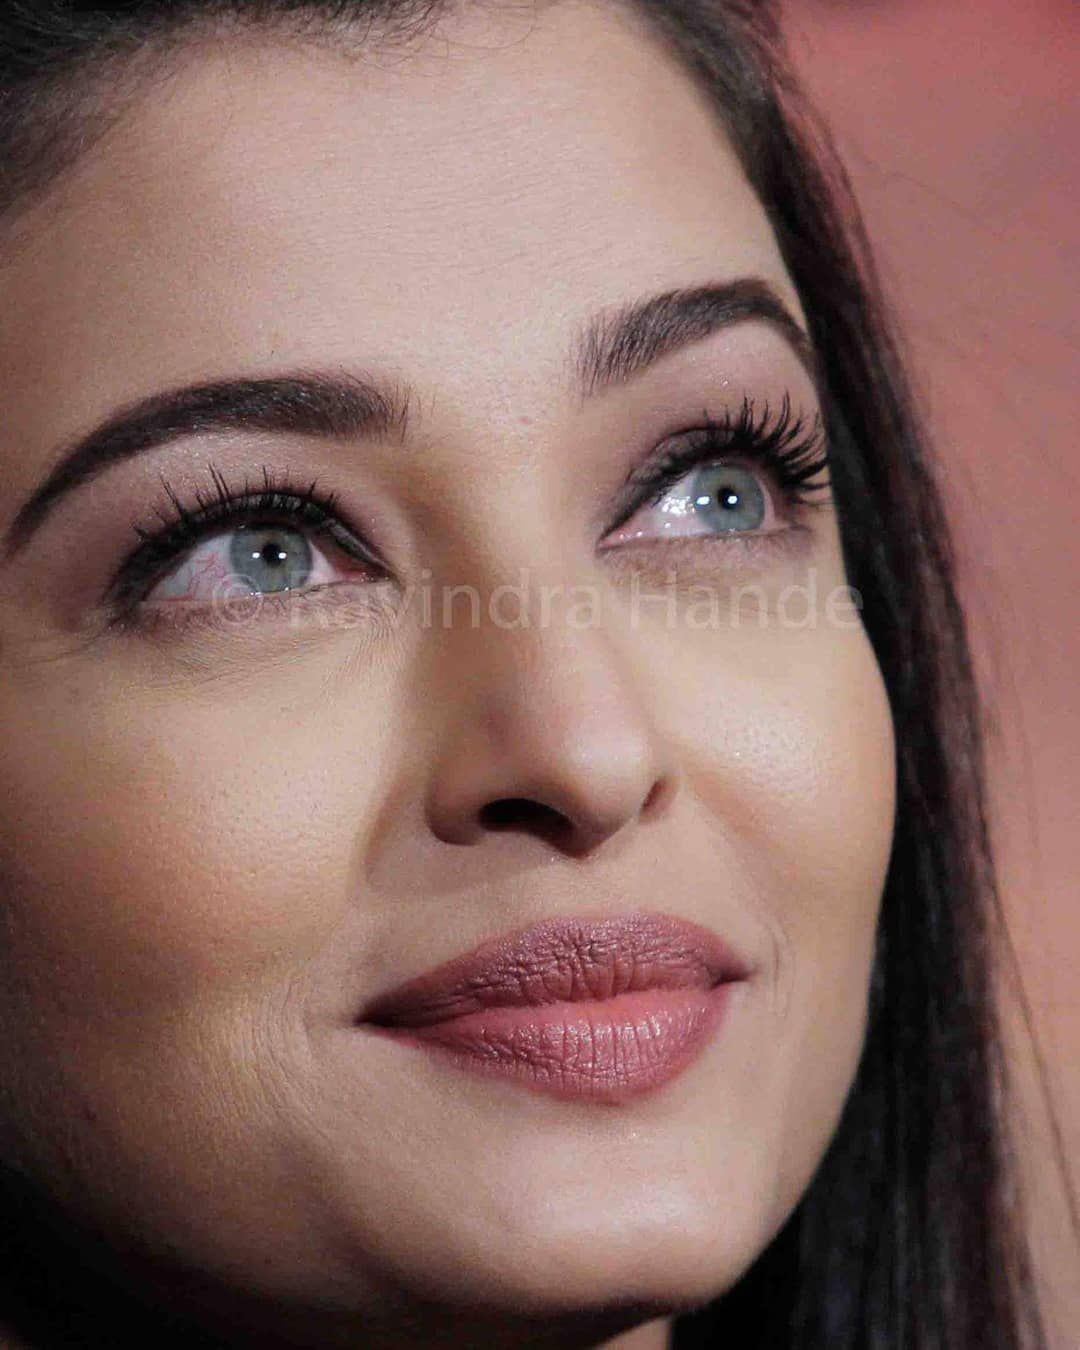 5 464 Likes 54 Comments Aishwarya Rai Bachchan News Aishwaryaraibacchan On Instagra Aishwarya Rai Bachchan Most Beautiful Bollywood Actress Aishwarya Rai